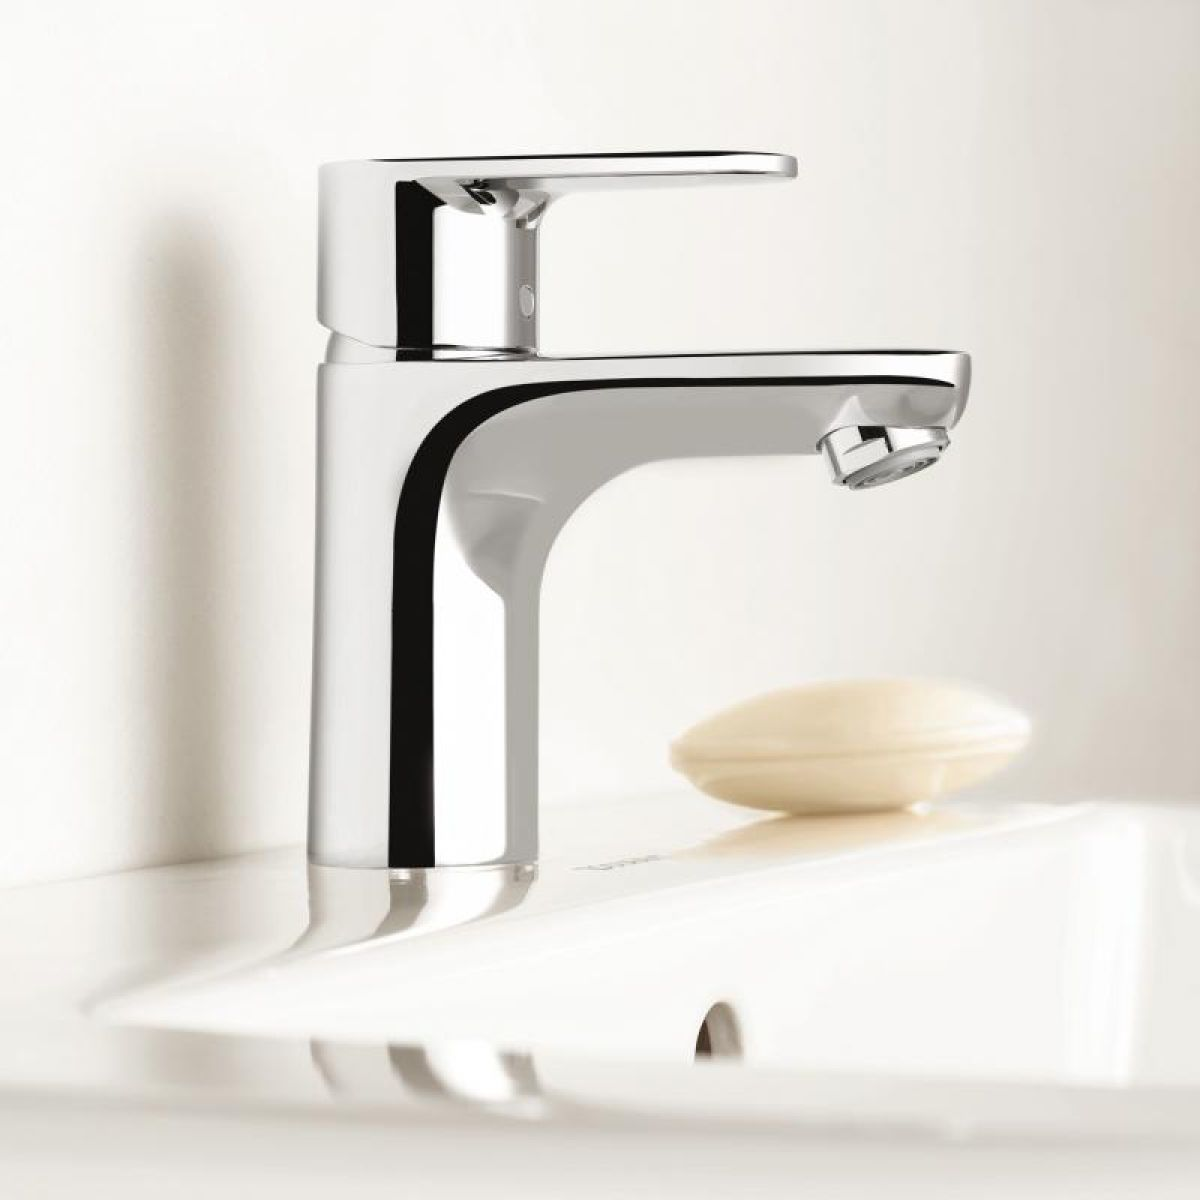 hansgrohe talis e 2 basin mixer tap uk bathrooms. Black Bedroom Furniture Sets. Home Design Ideas